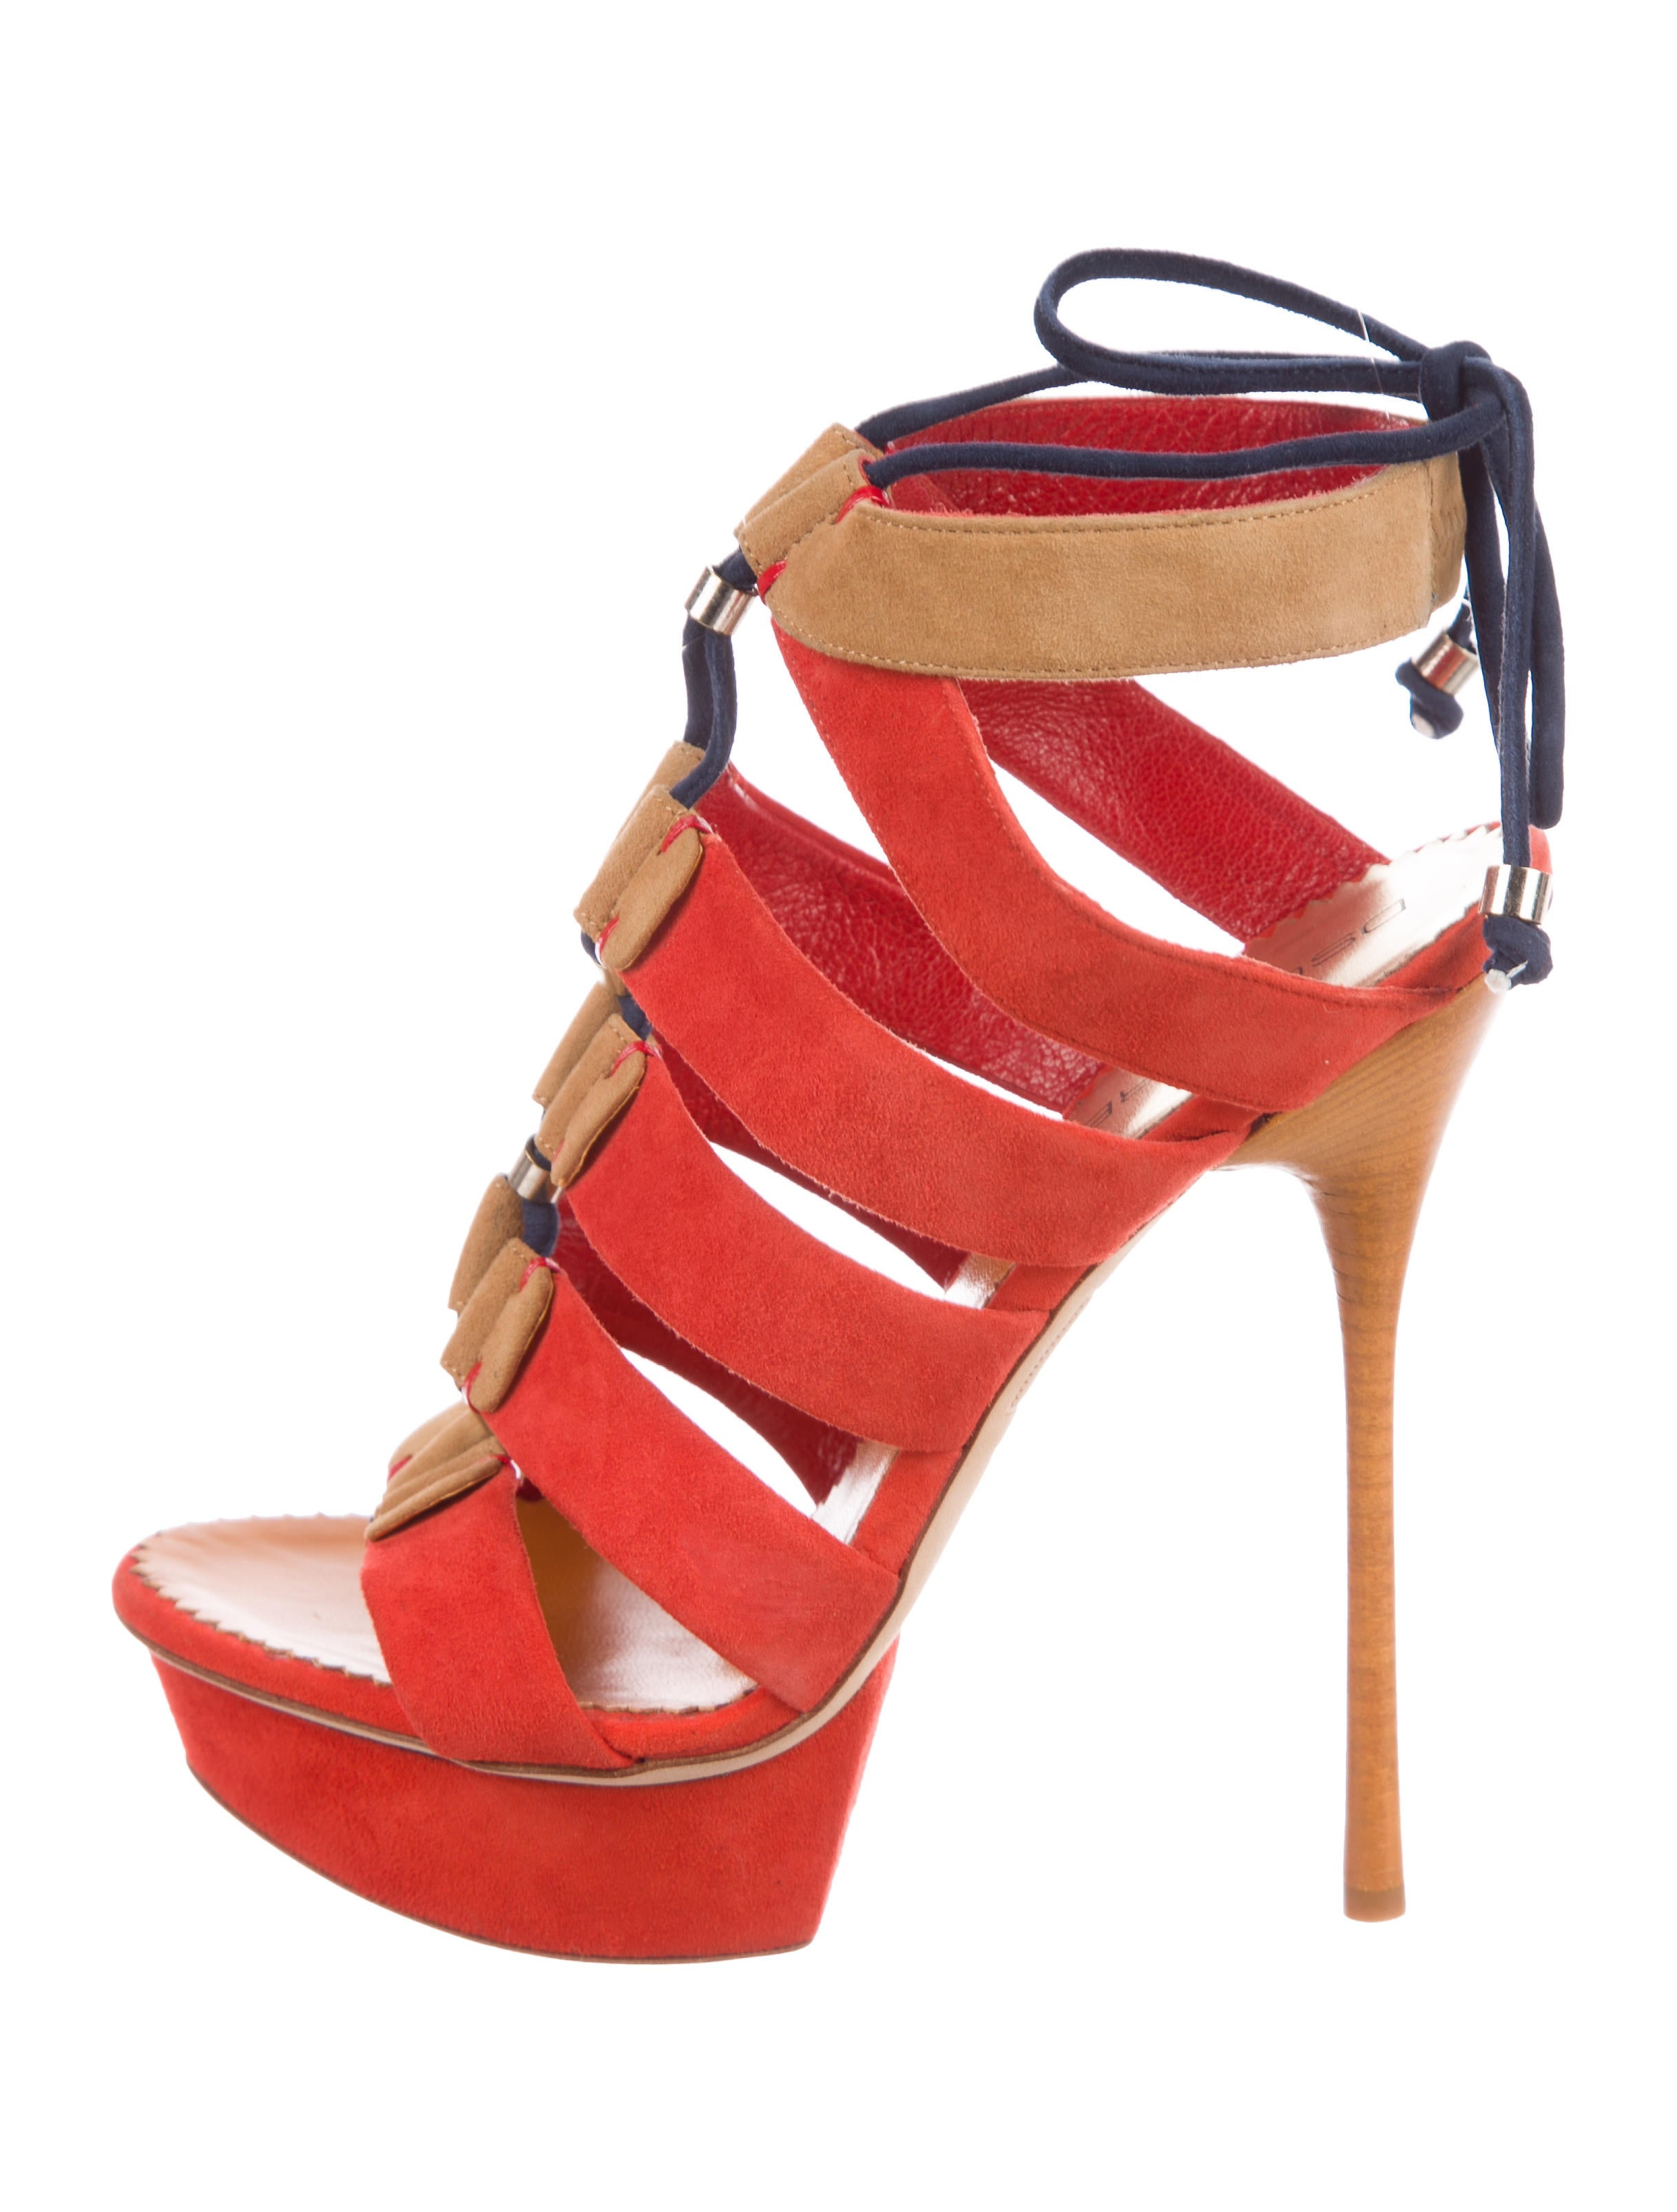 Dsquared² Suede Platform Sandals sale best sale GXiIfI